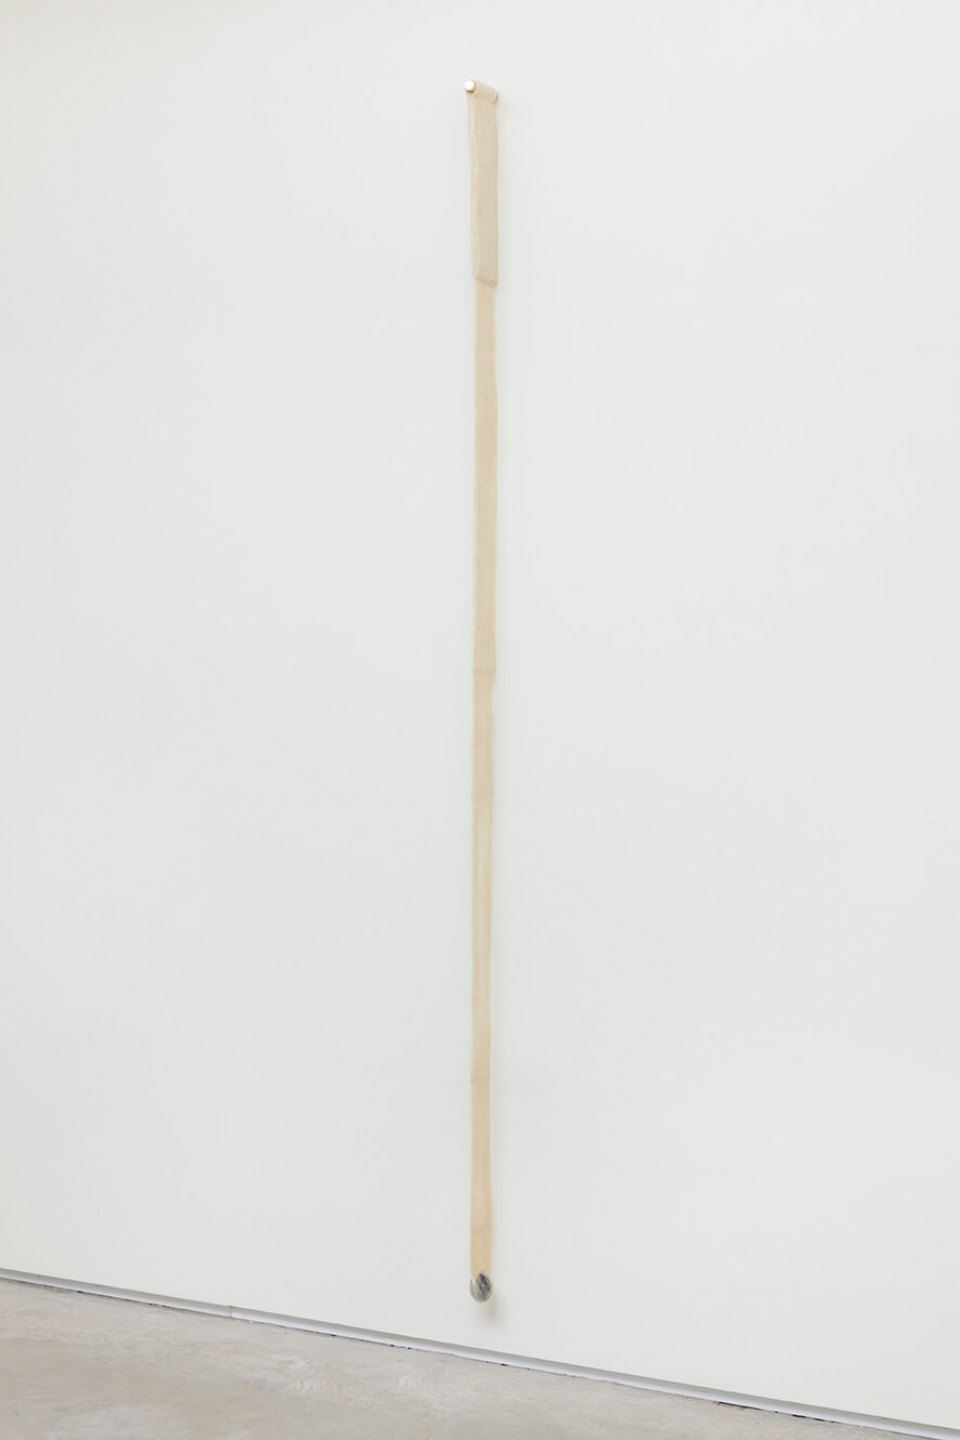 Paloma Bosquê, <em>Plumb</em>, 2016, wool felted by hand, dyed bee wax shaped in egg form and brass rods, 239 × 4,5 × 9 cm - Mendes Wood DM